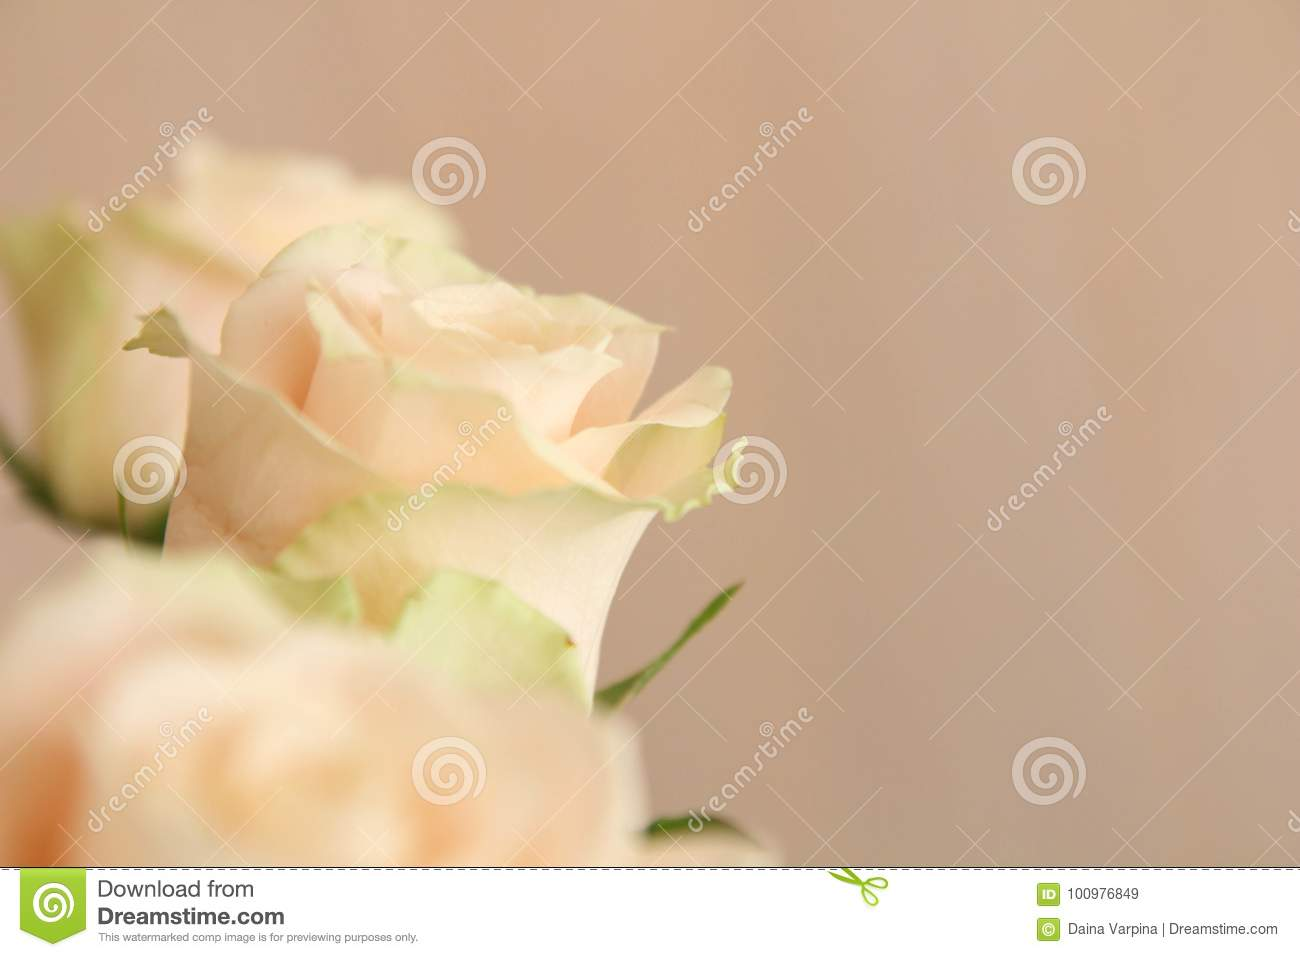 White roses background nature flowers bouquet stock image image download comp izmirmasajfo